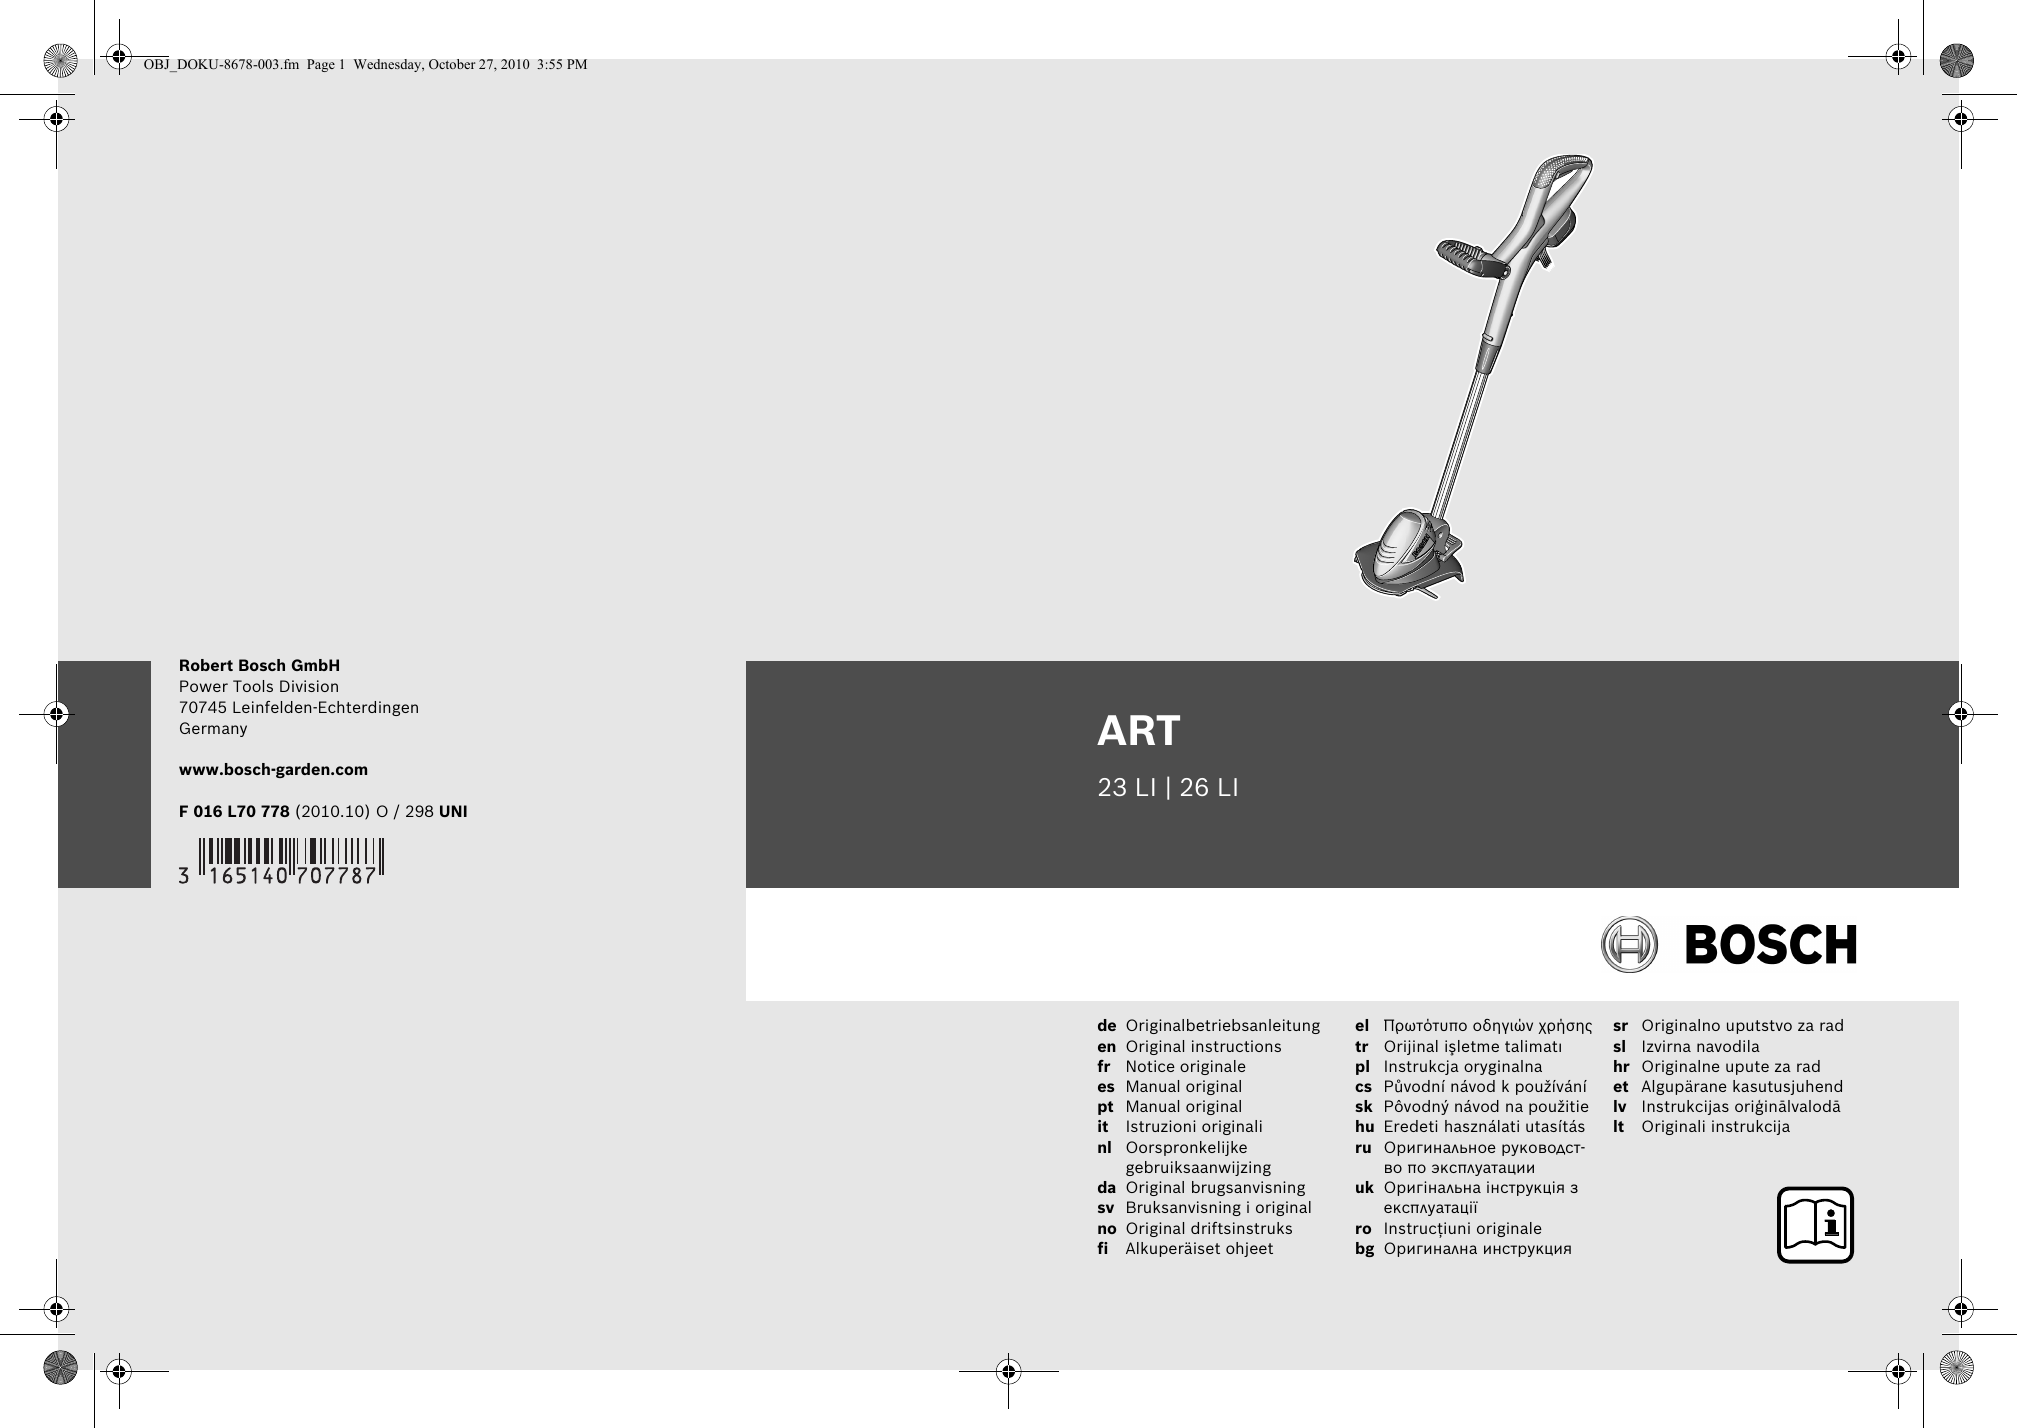 Art26LiManual User Guide Page 1